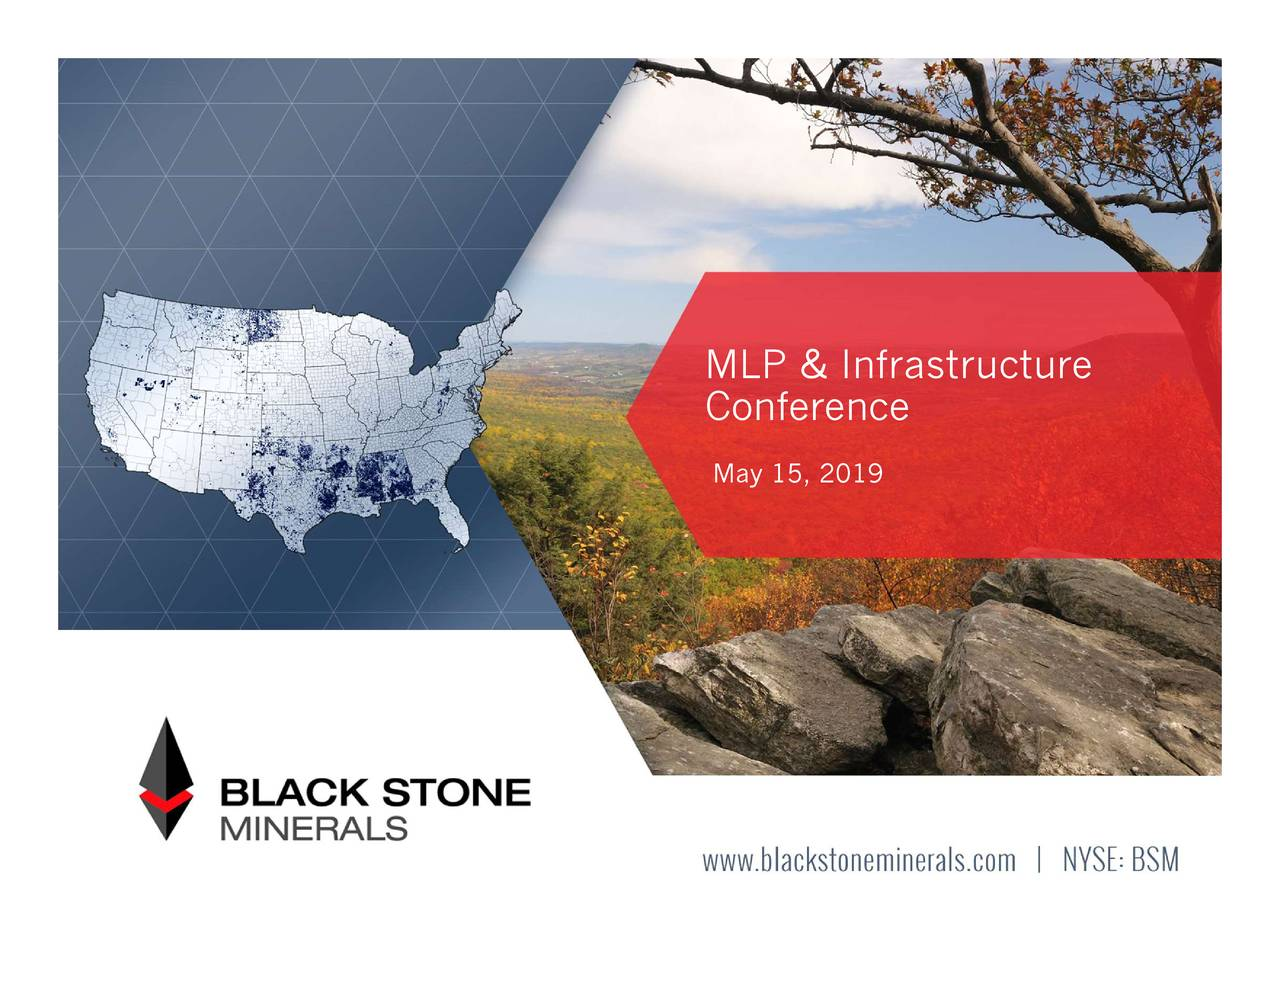 Black Stone Minerals LP (BSM) Presents At 2019 MLP & Energy Infrastructure Conference - Slideshow